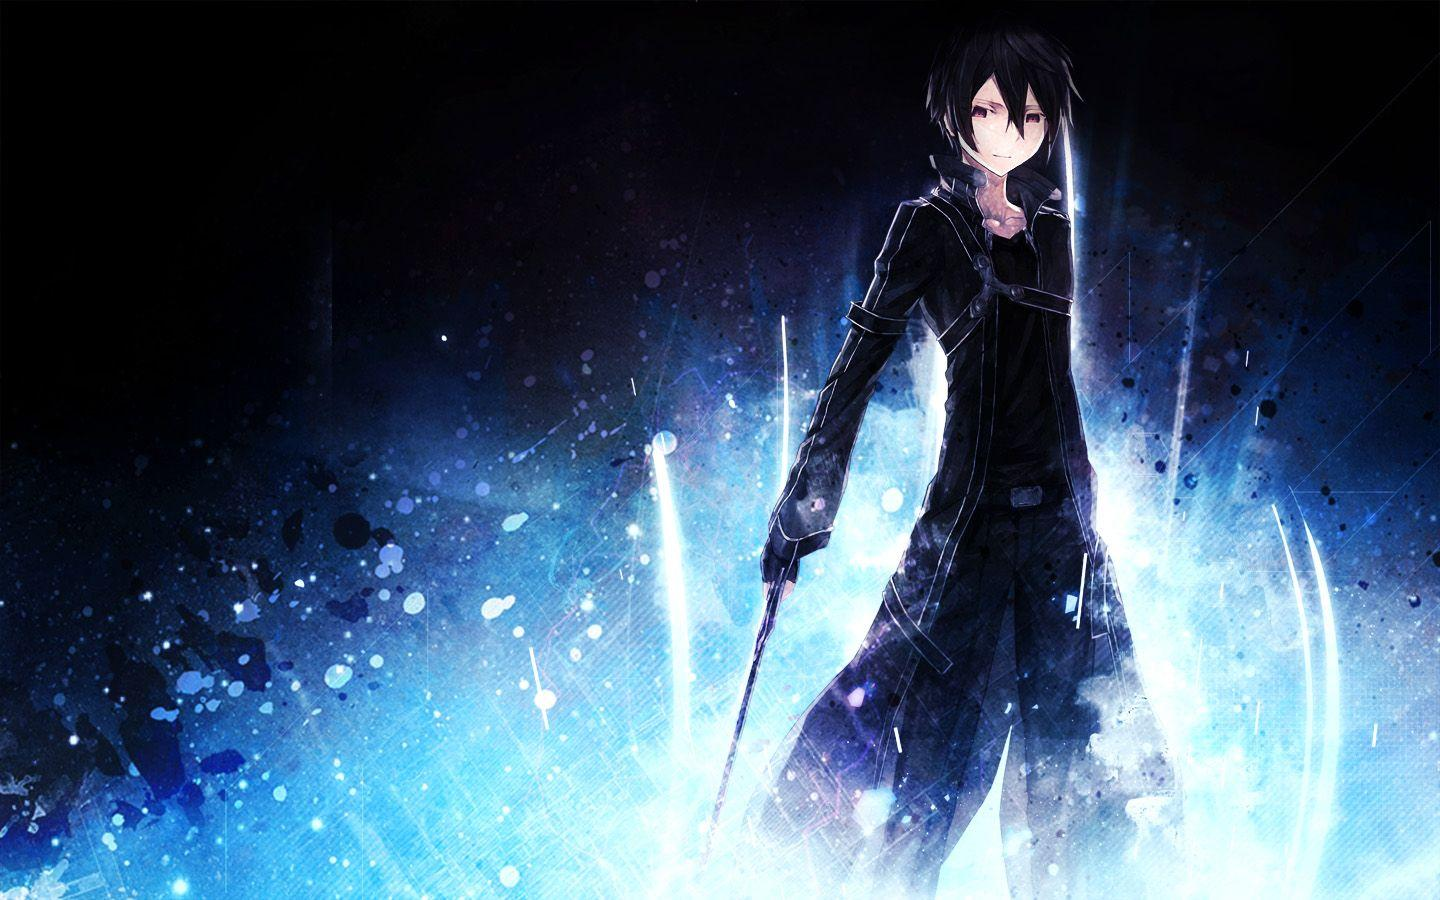 1080p Sword Art Online Kirito Wallpaper Anime Wallpapers